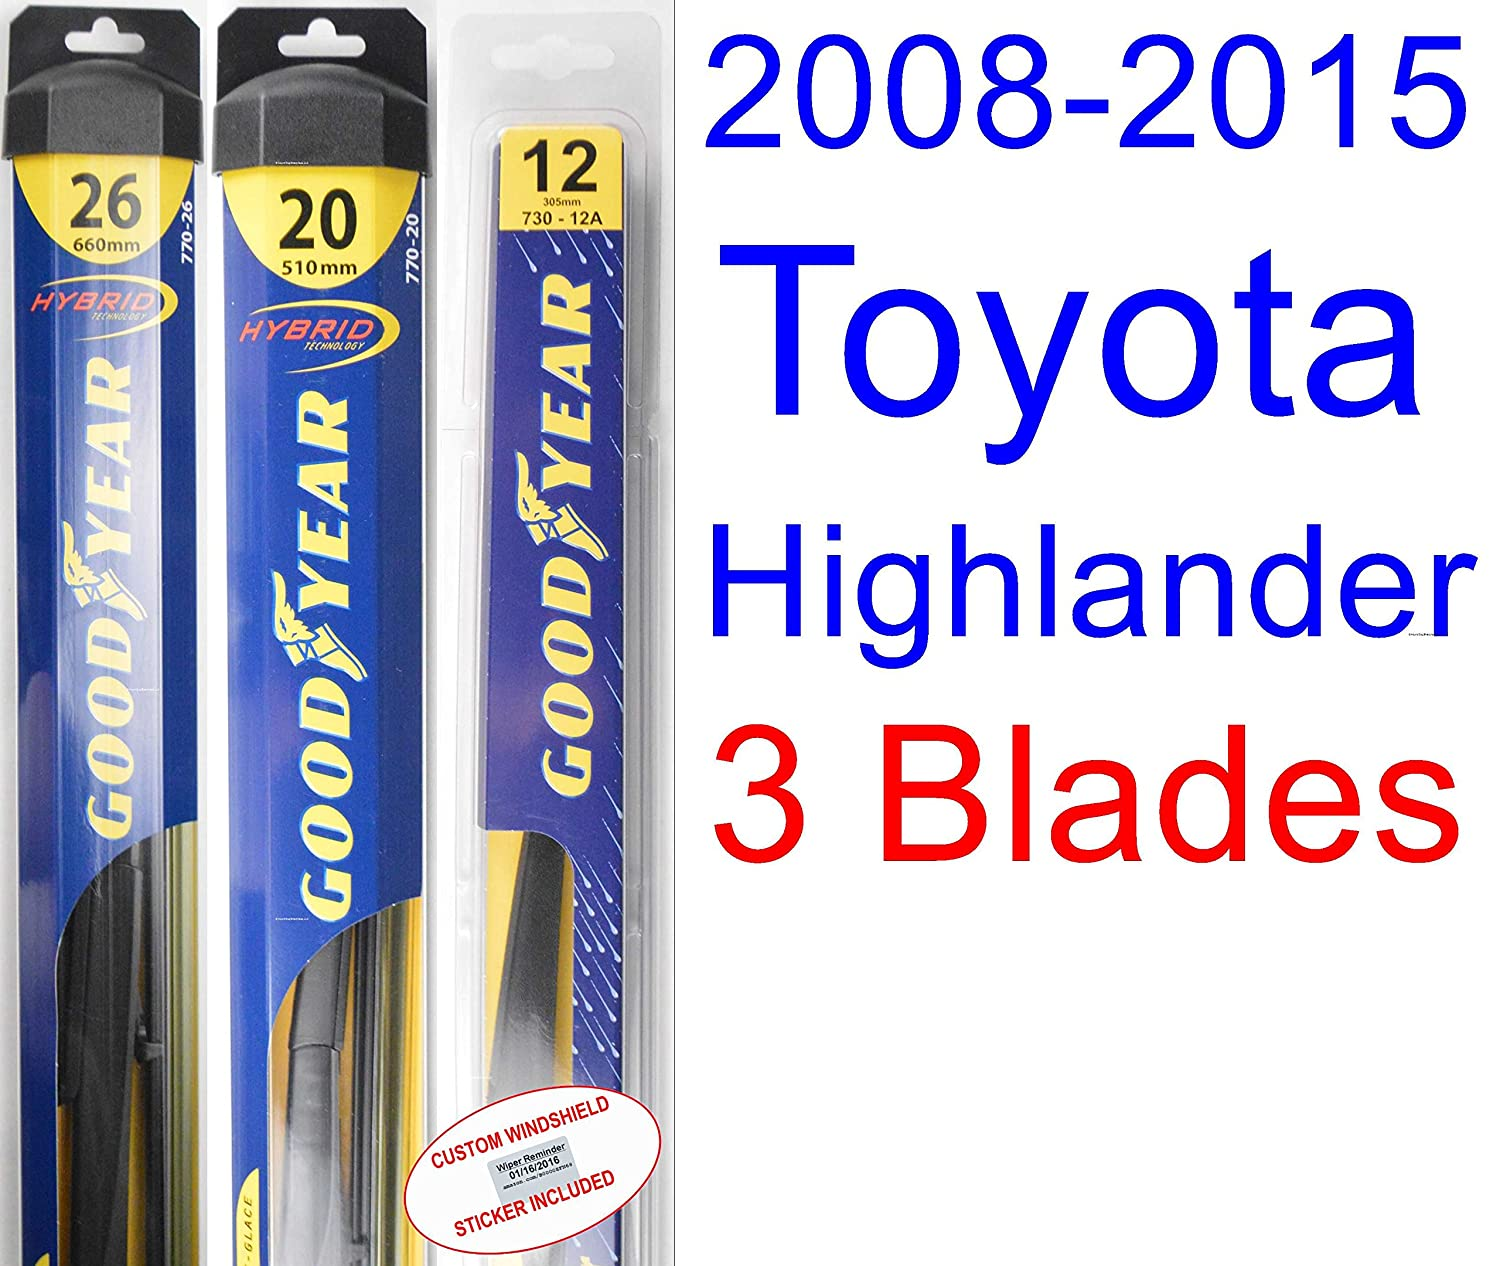 Amazon.com: 2008-2015 Toyota Highlander Wiper Blade (Rear) (Goodyear Wiper Blades-Hybrid) (2009,2010,2011,2012,2013,2014): Automotive